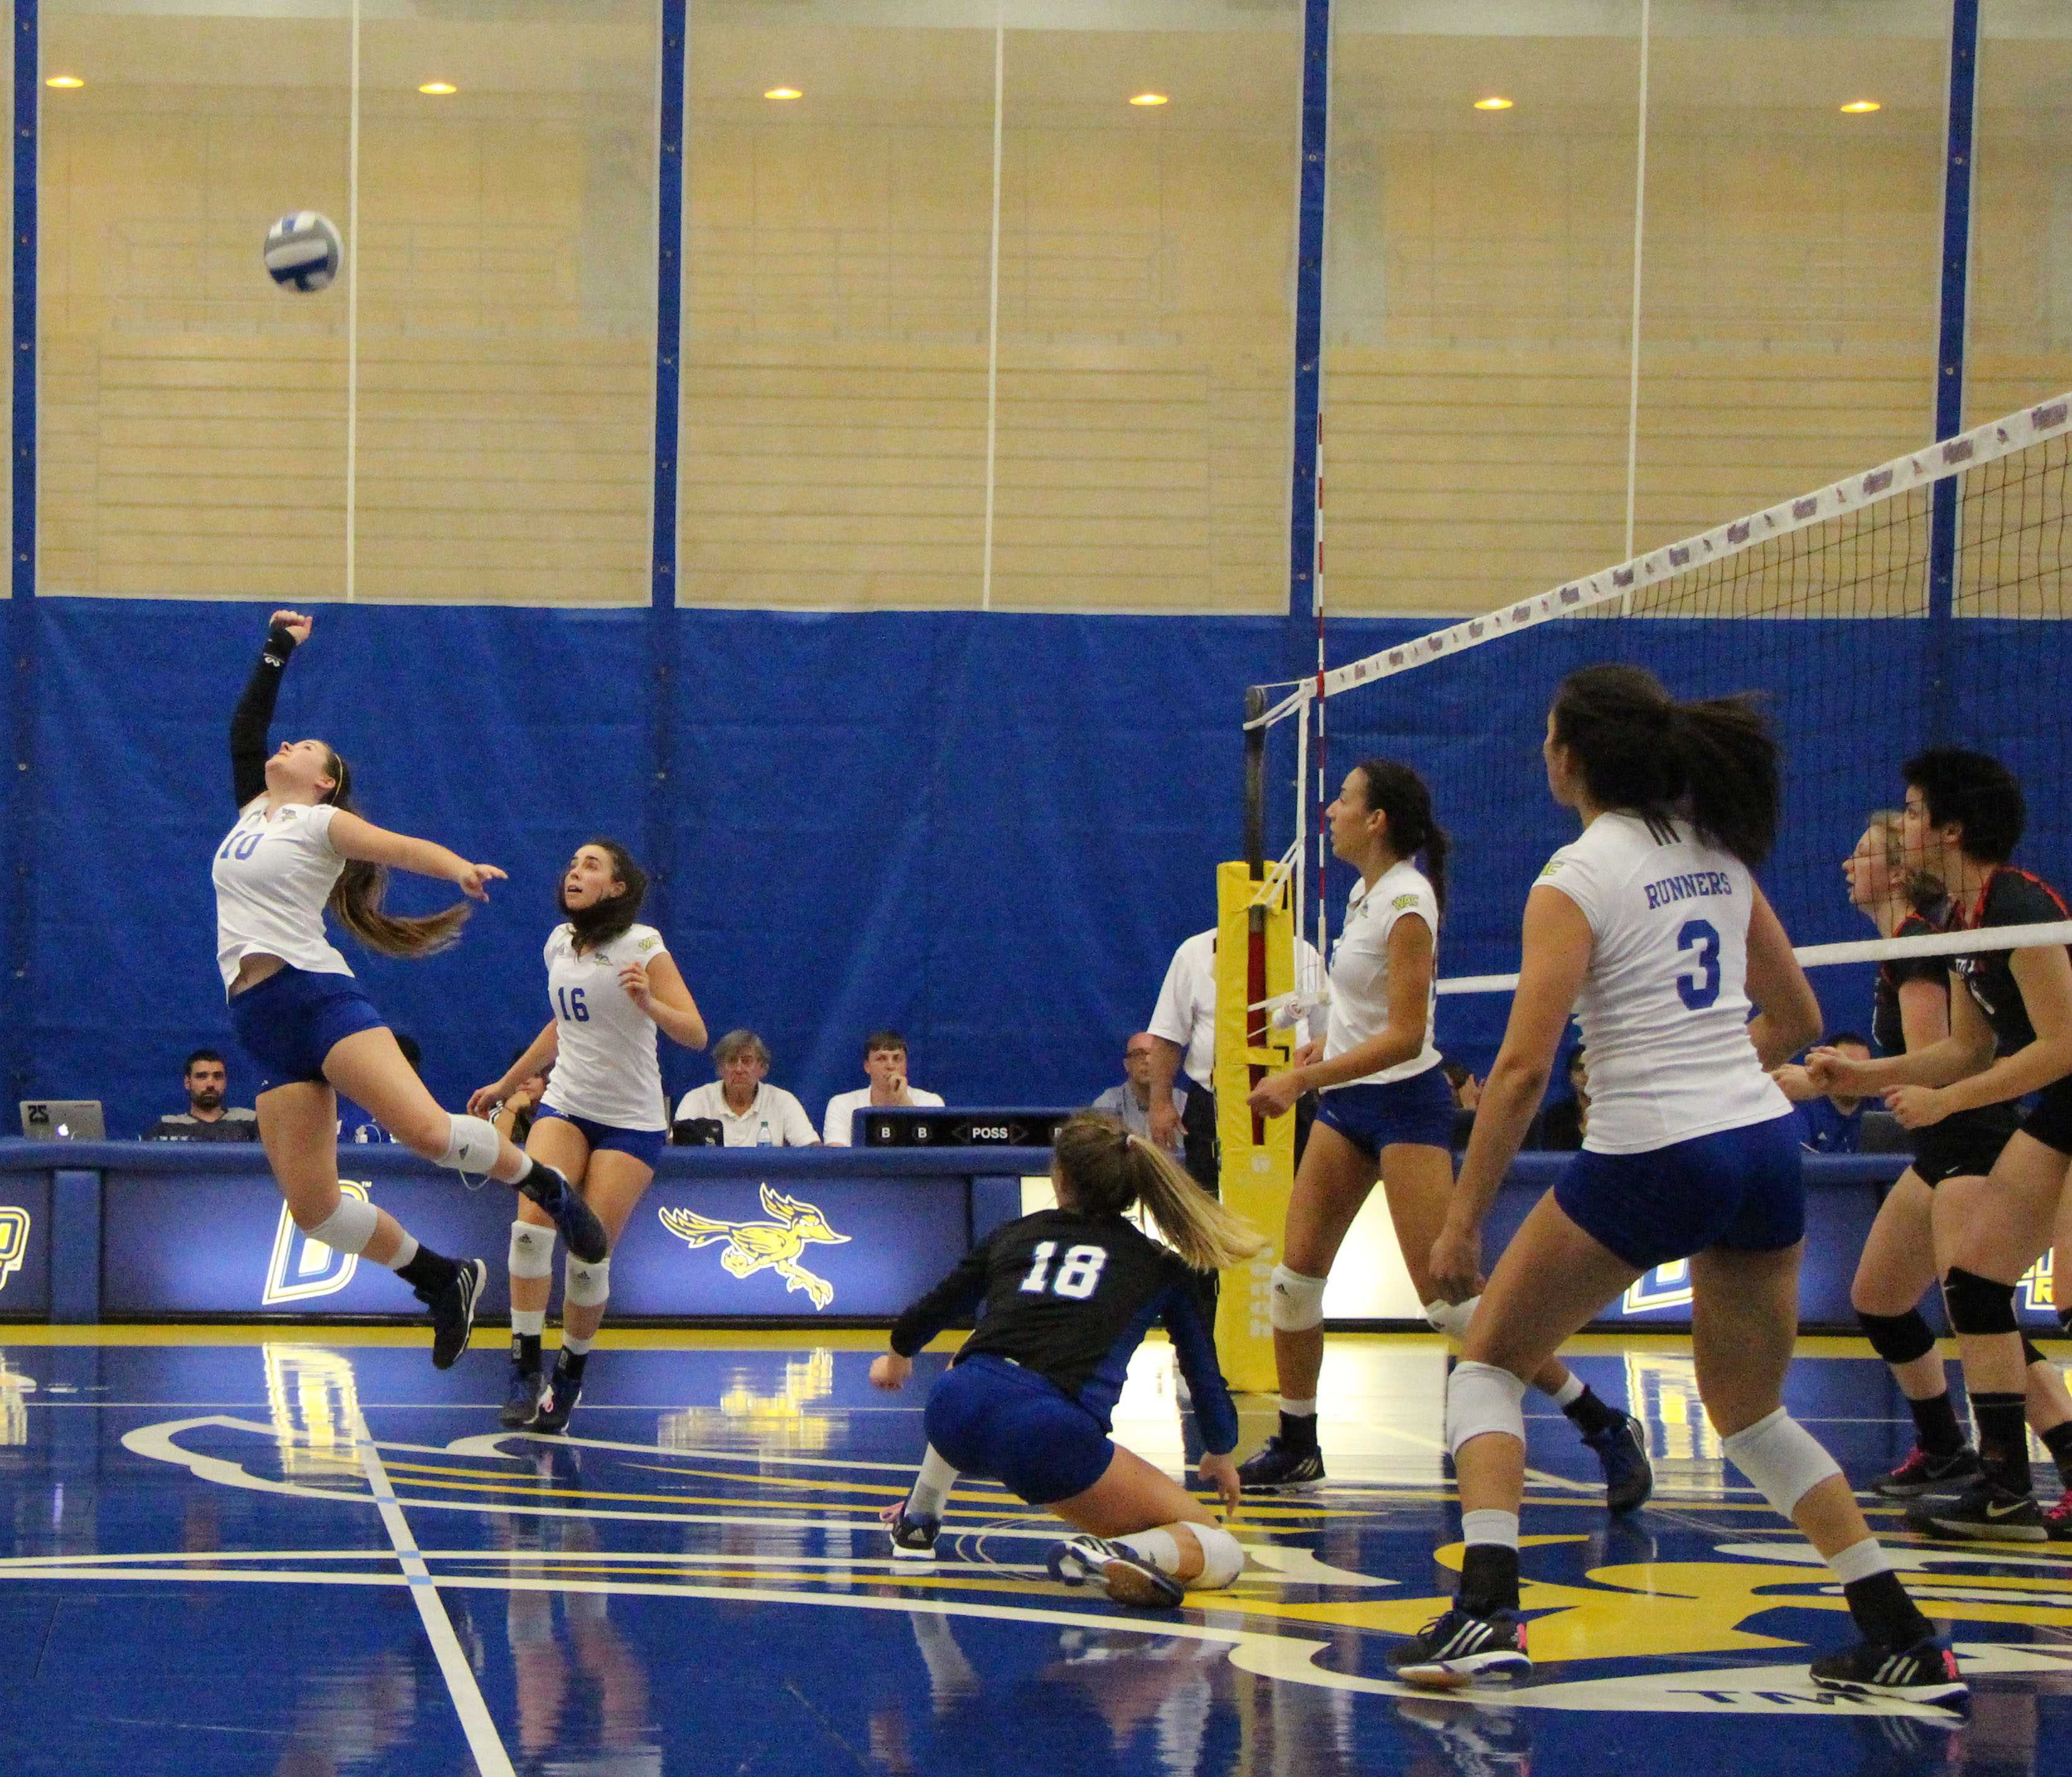 CSUB rallies to beat UVU, moves into 2nd in WAC